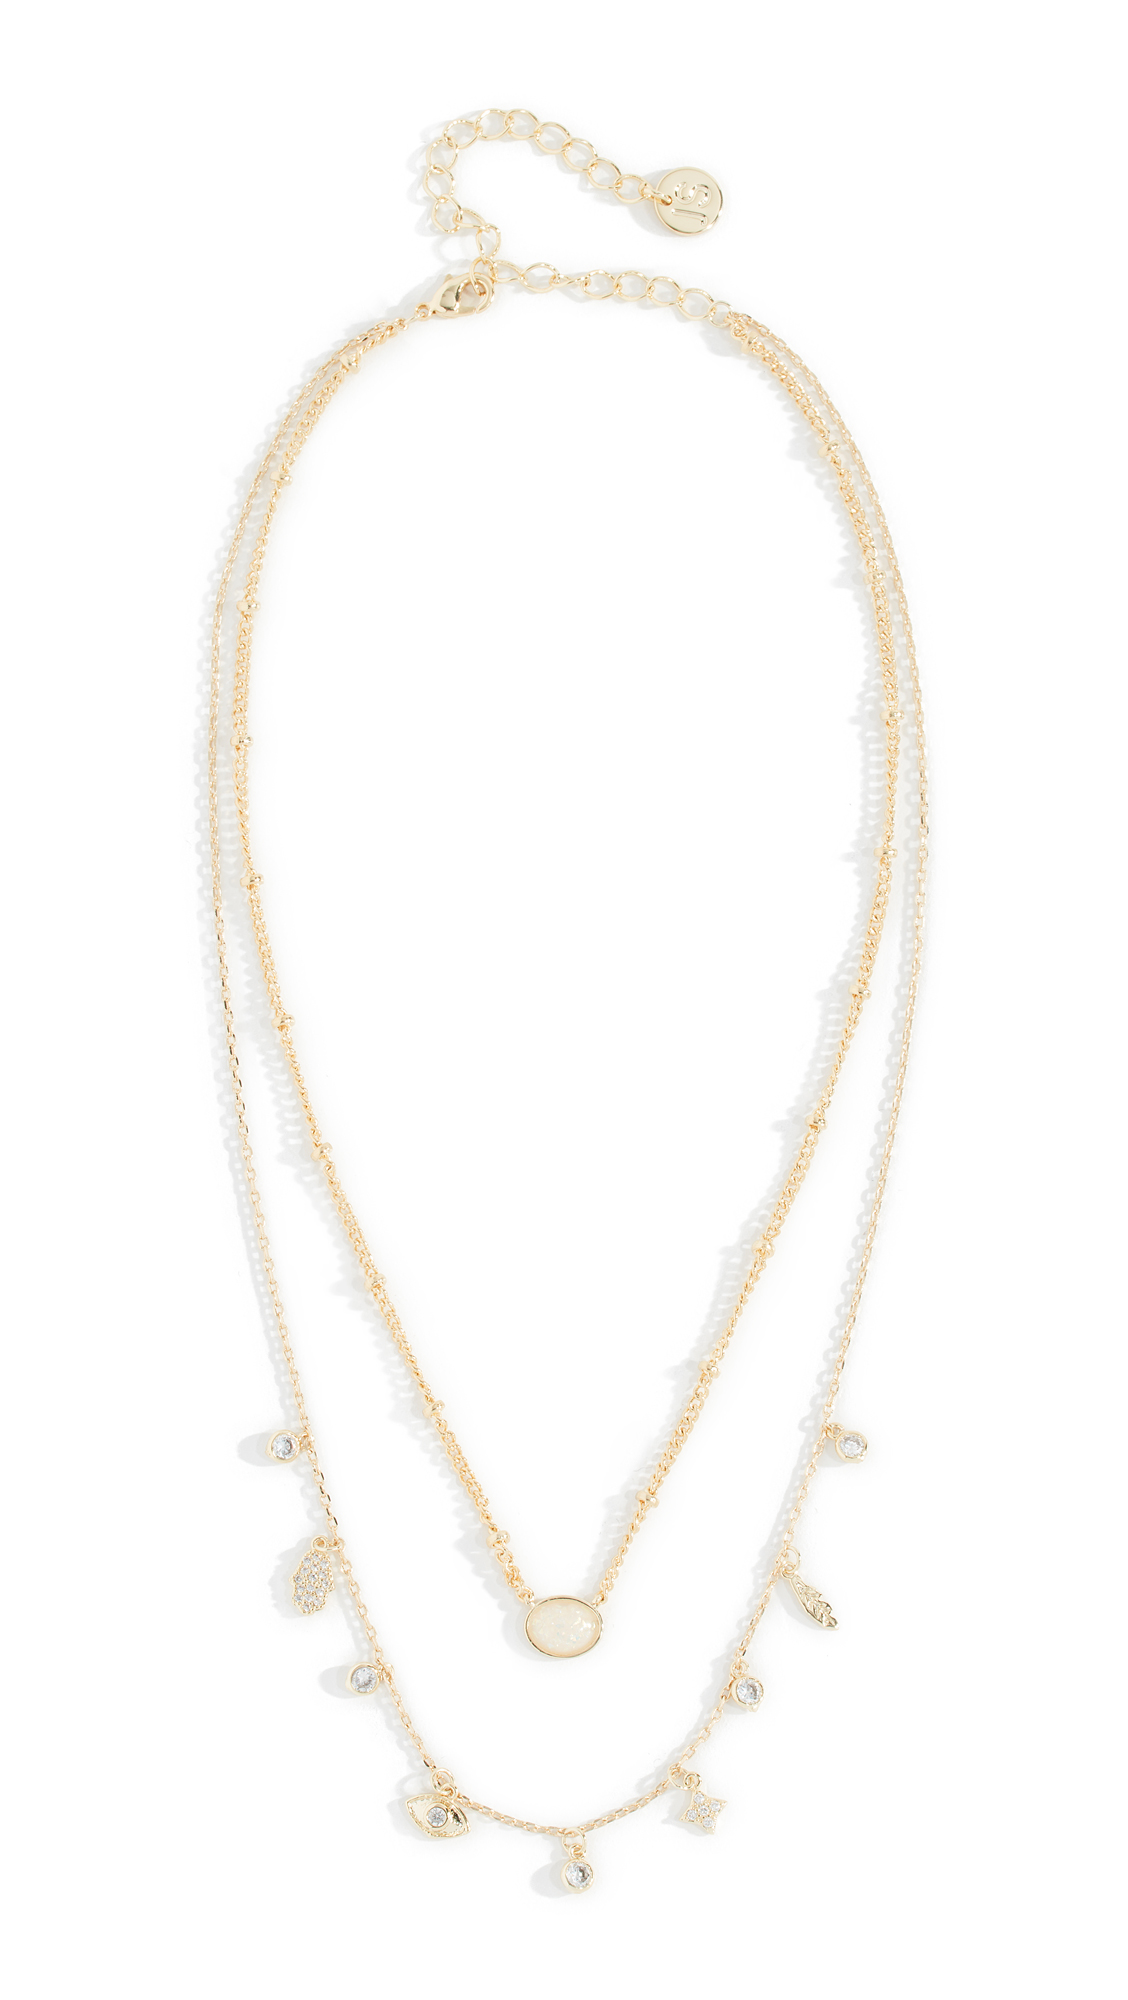 JULES SMITH Layered Necklace in Gold